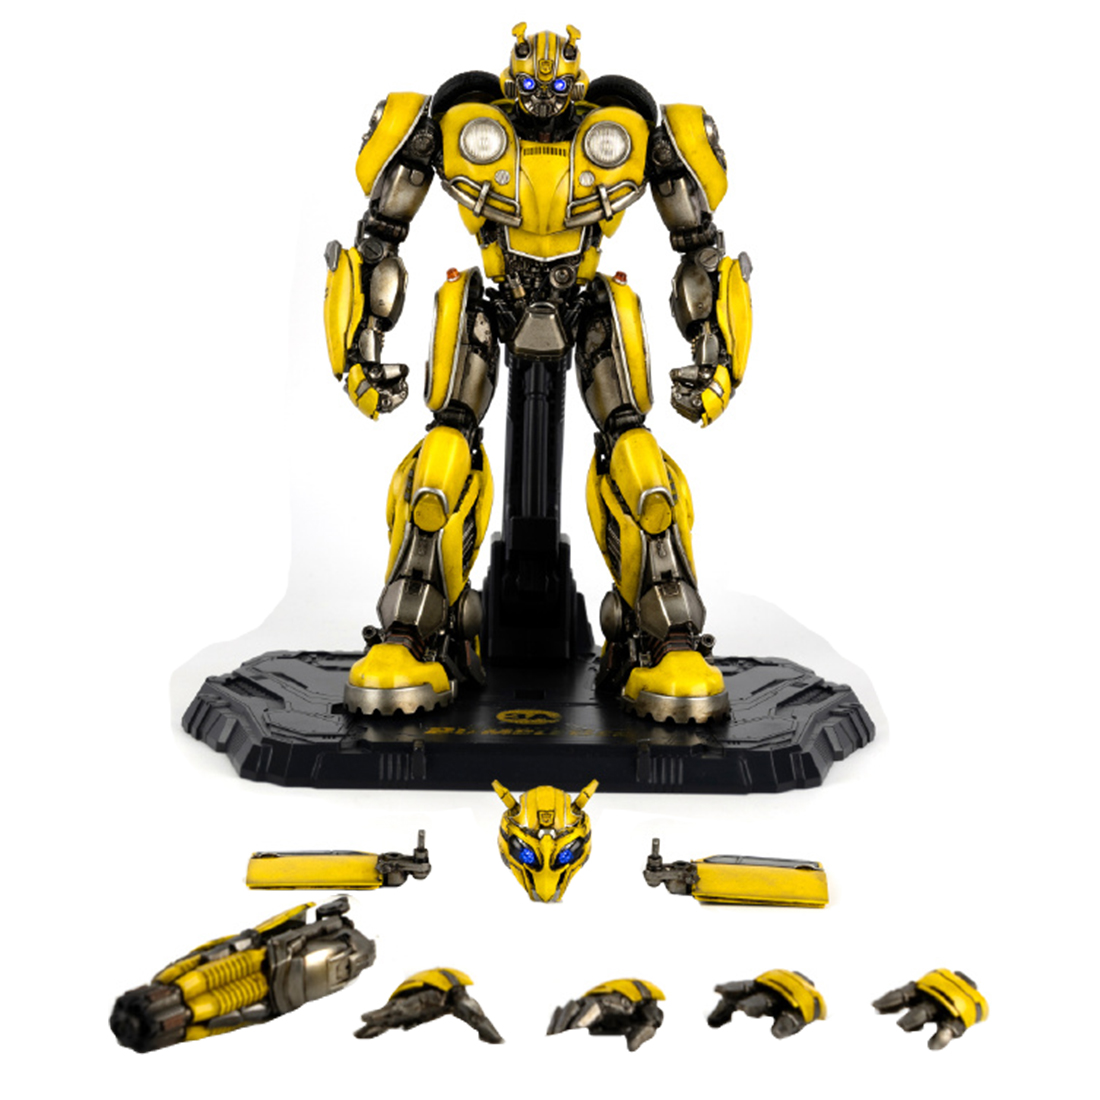 20cm For Bumblebee Toys Action Figure Toy Robot Anime Figure Model Kit For Children Adult Hot Sale